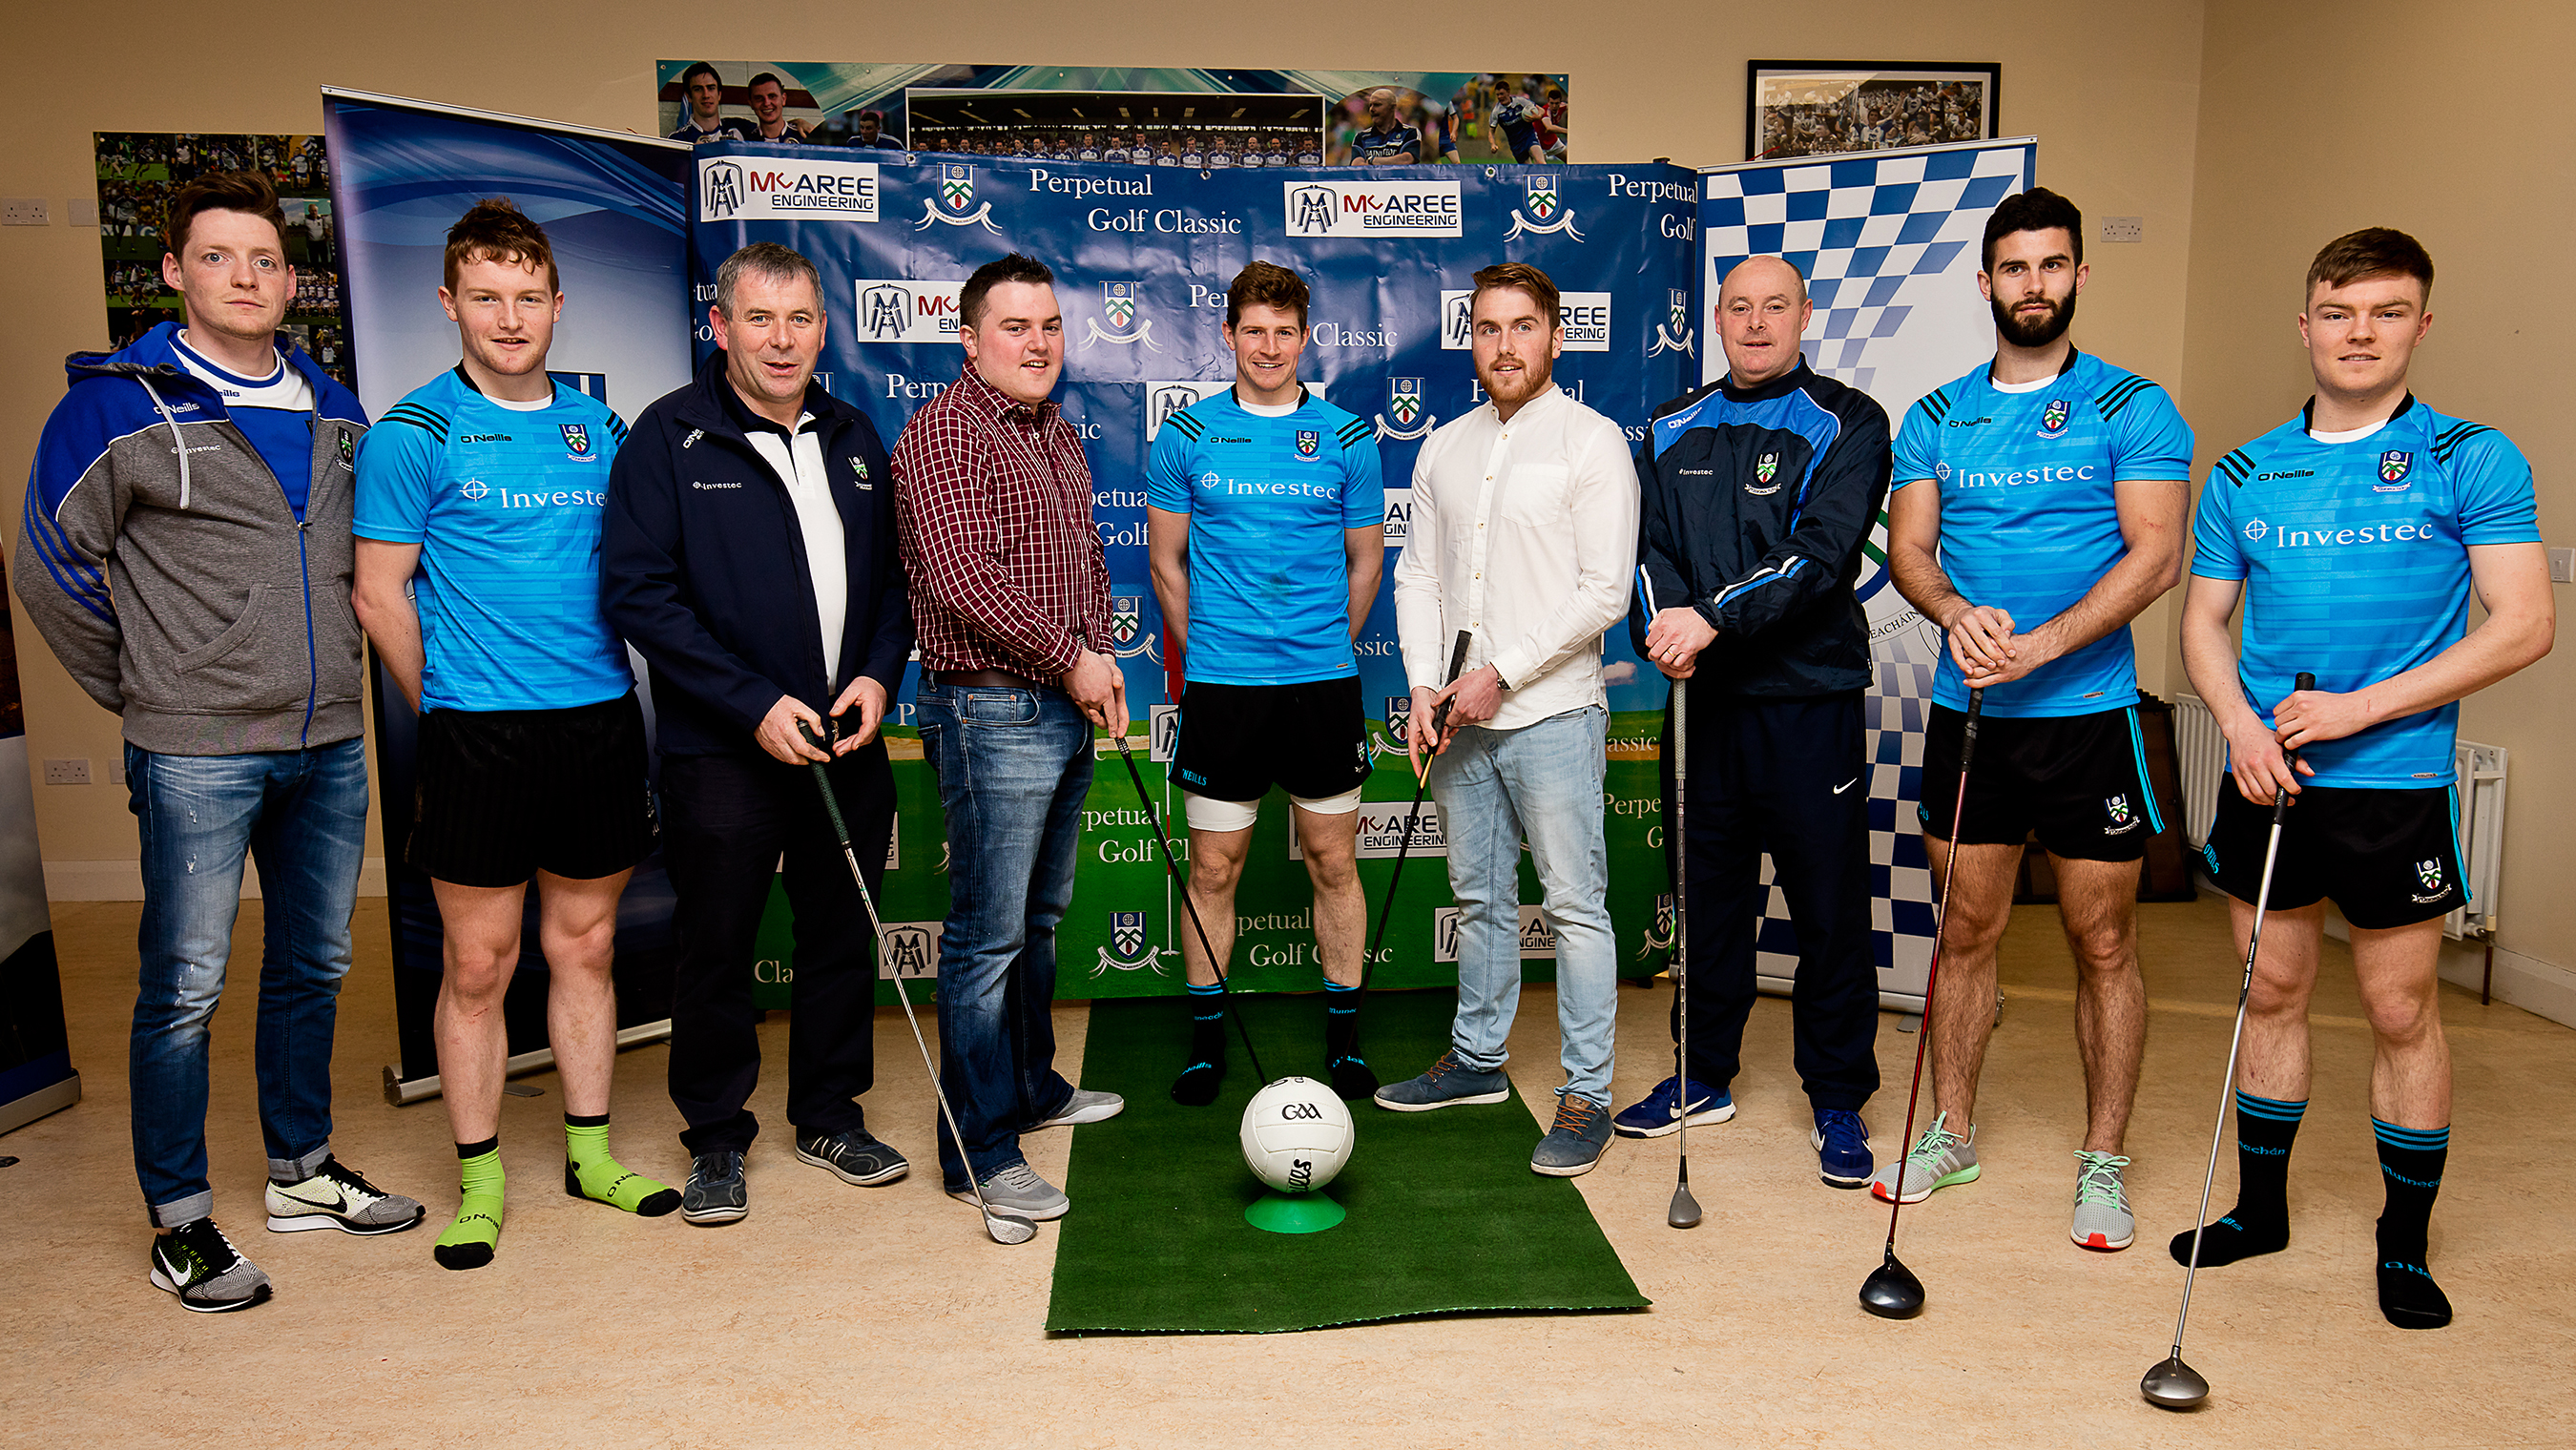 Monaghan GAA Perpetual Golf Classic   Saturday 28th May 2016